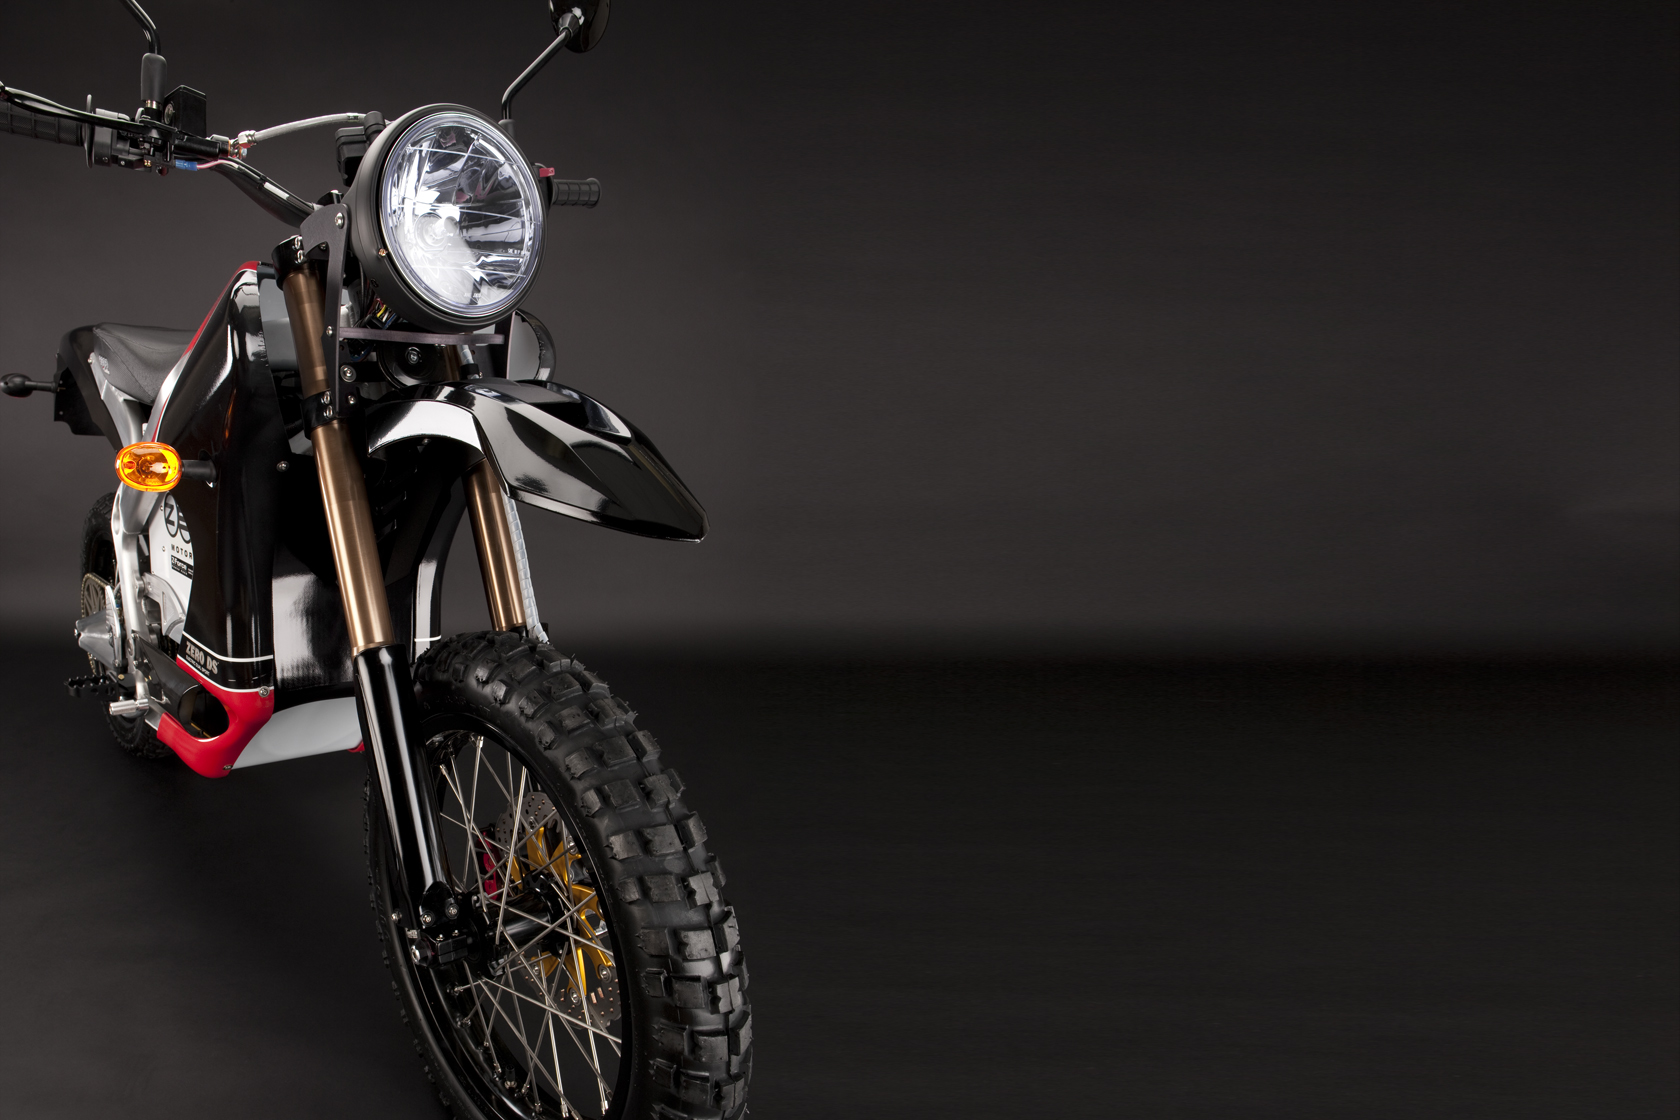 '.2010 Zero DS Electric Motorcycle: Front Fork.'